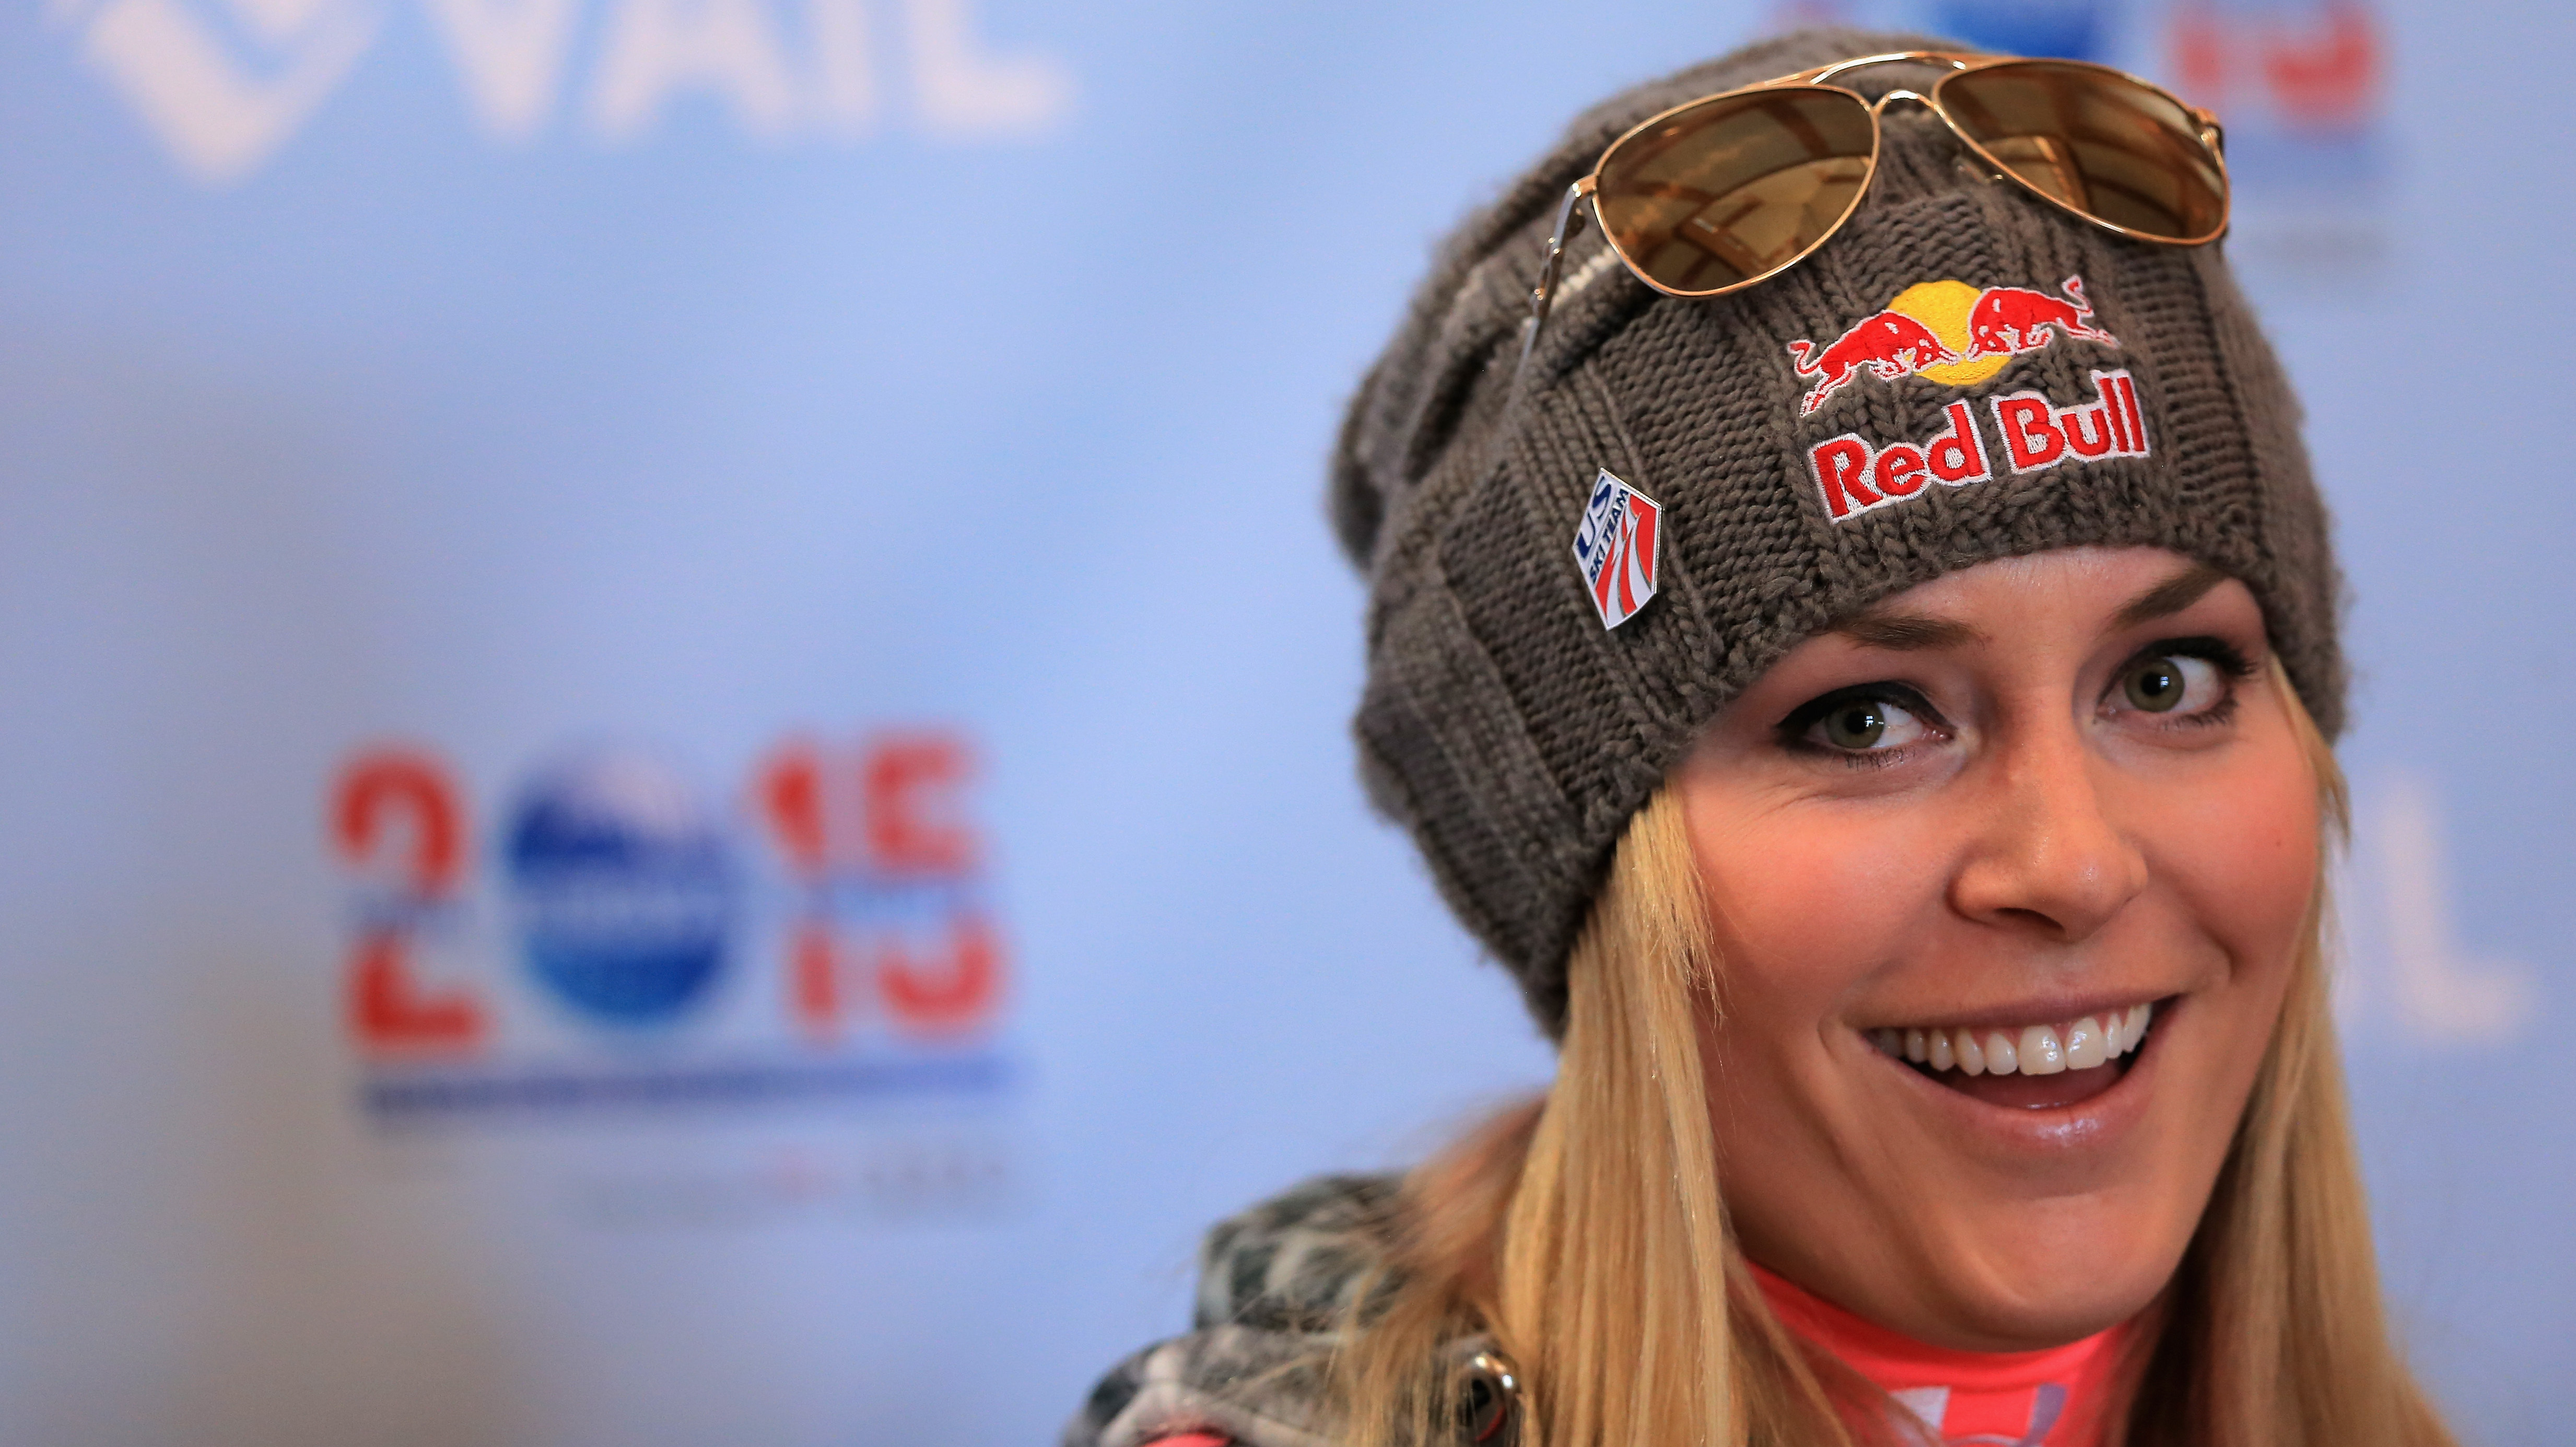 Lindsey Vonn: Lindsey Vonn Is Out, But Some Advertisers May Still Win : NPR